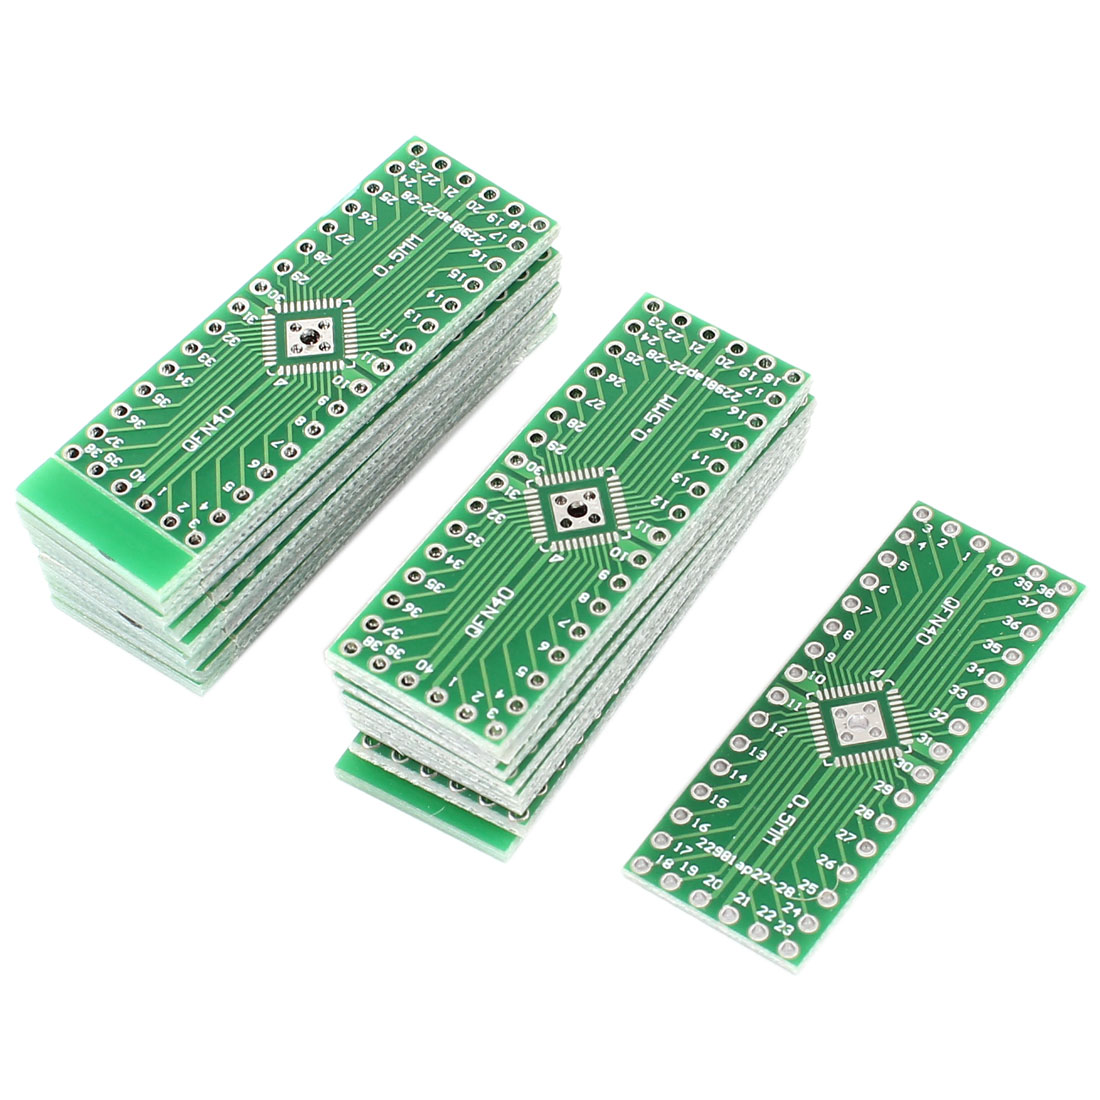 10 Pcs QFN32 to QFN40 Double Sides 0.5mm Pitch DIP Mounting PCB Adapter Converter Plate